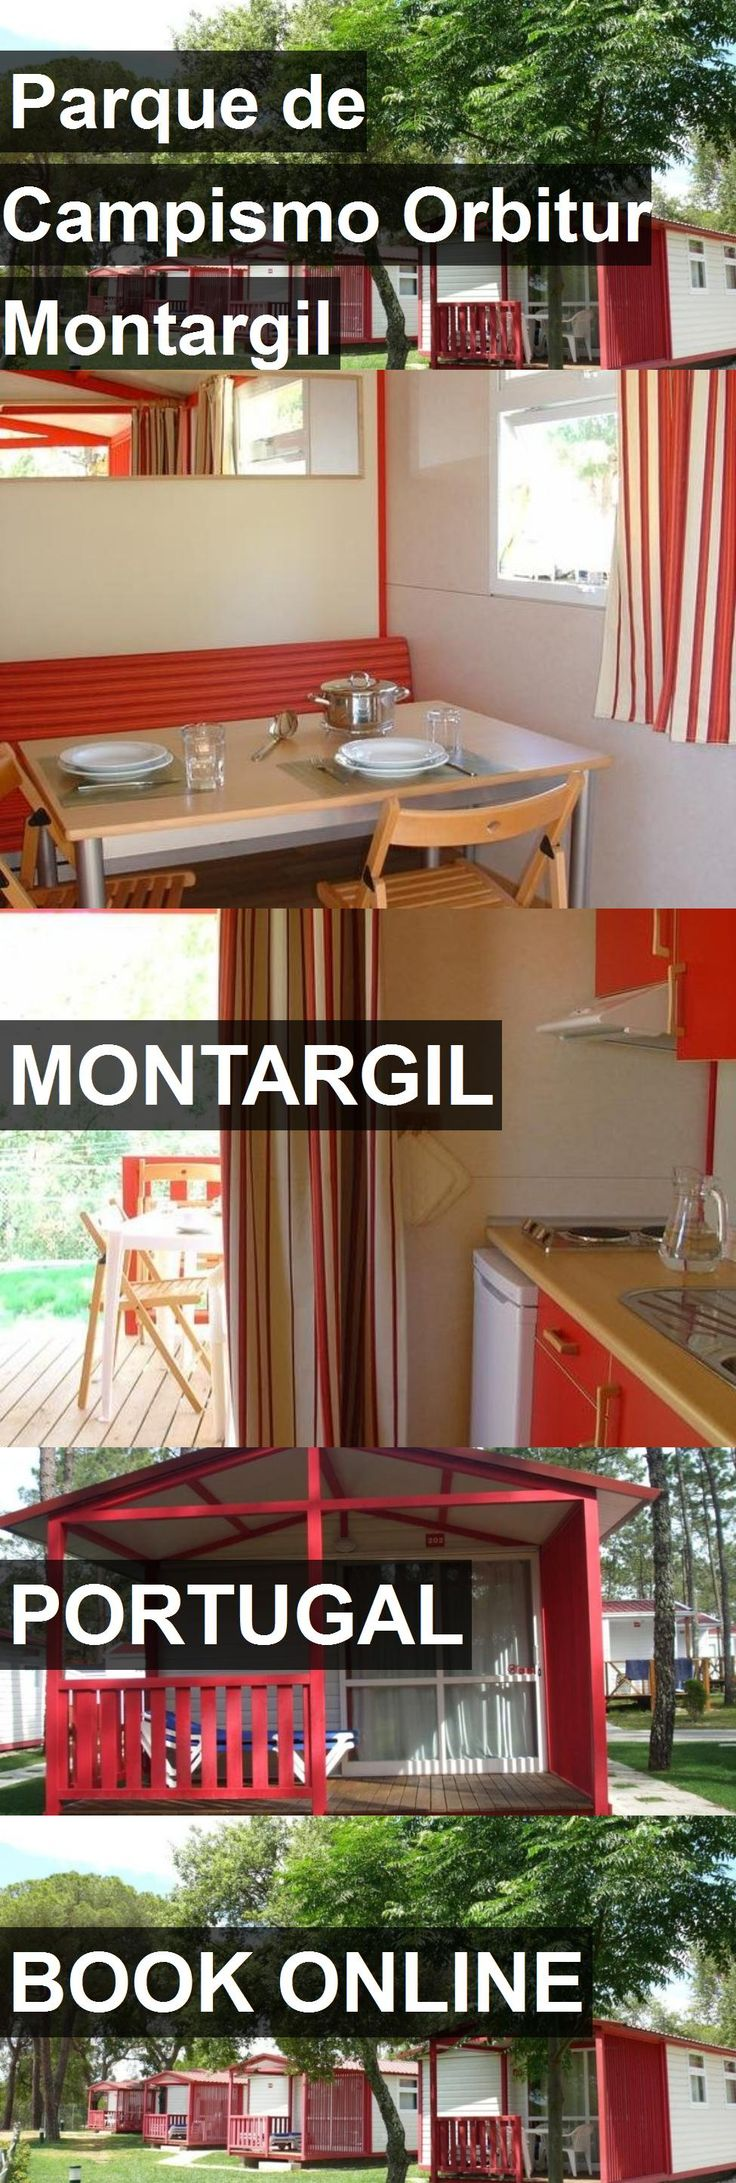 Hotel Parque de Campismo Orbitur Montargil in Montargil, Portugal. For more information, photos, reviews and best prices please follow the link. #Portugal #Montargil #travel #vacation #hotel